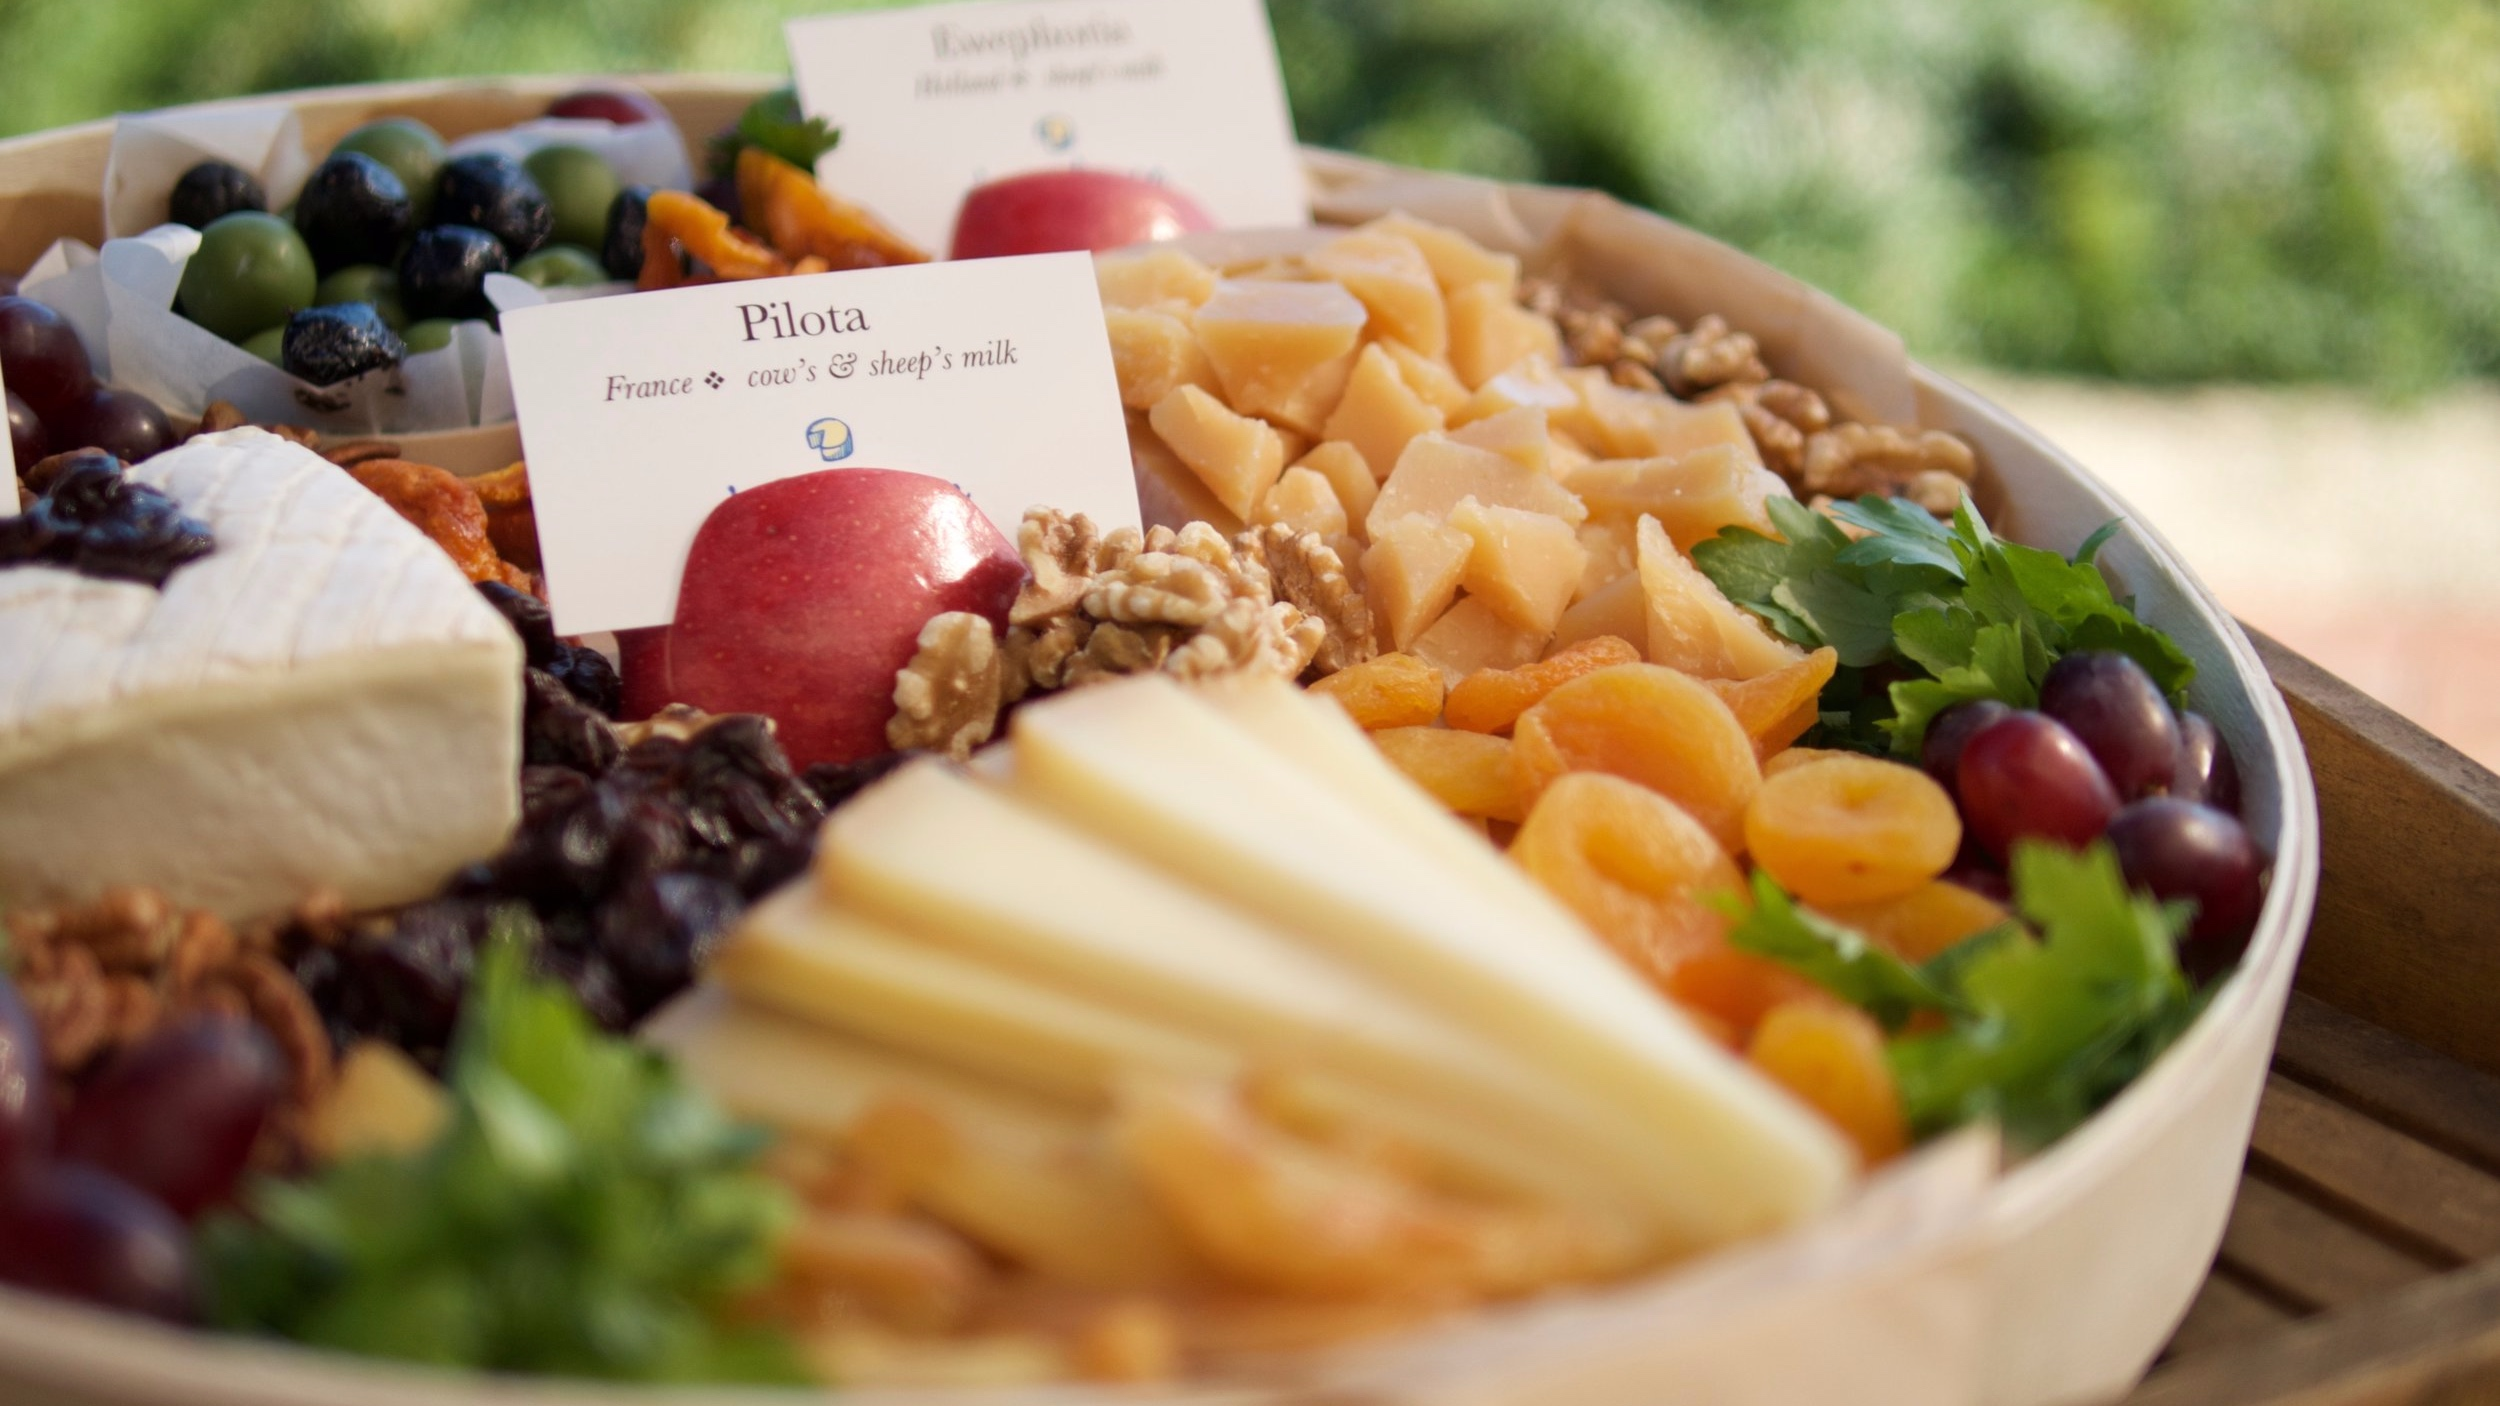 Catering - Because who really wants to go to a party without cheese.